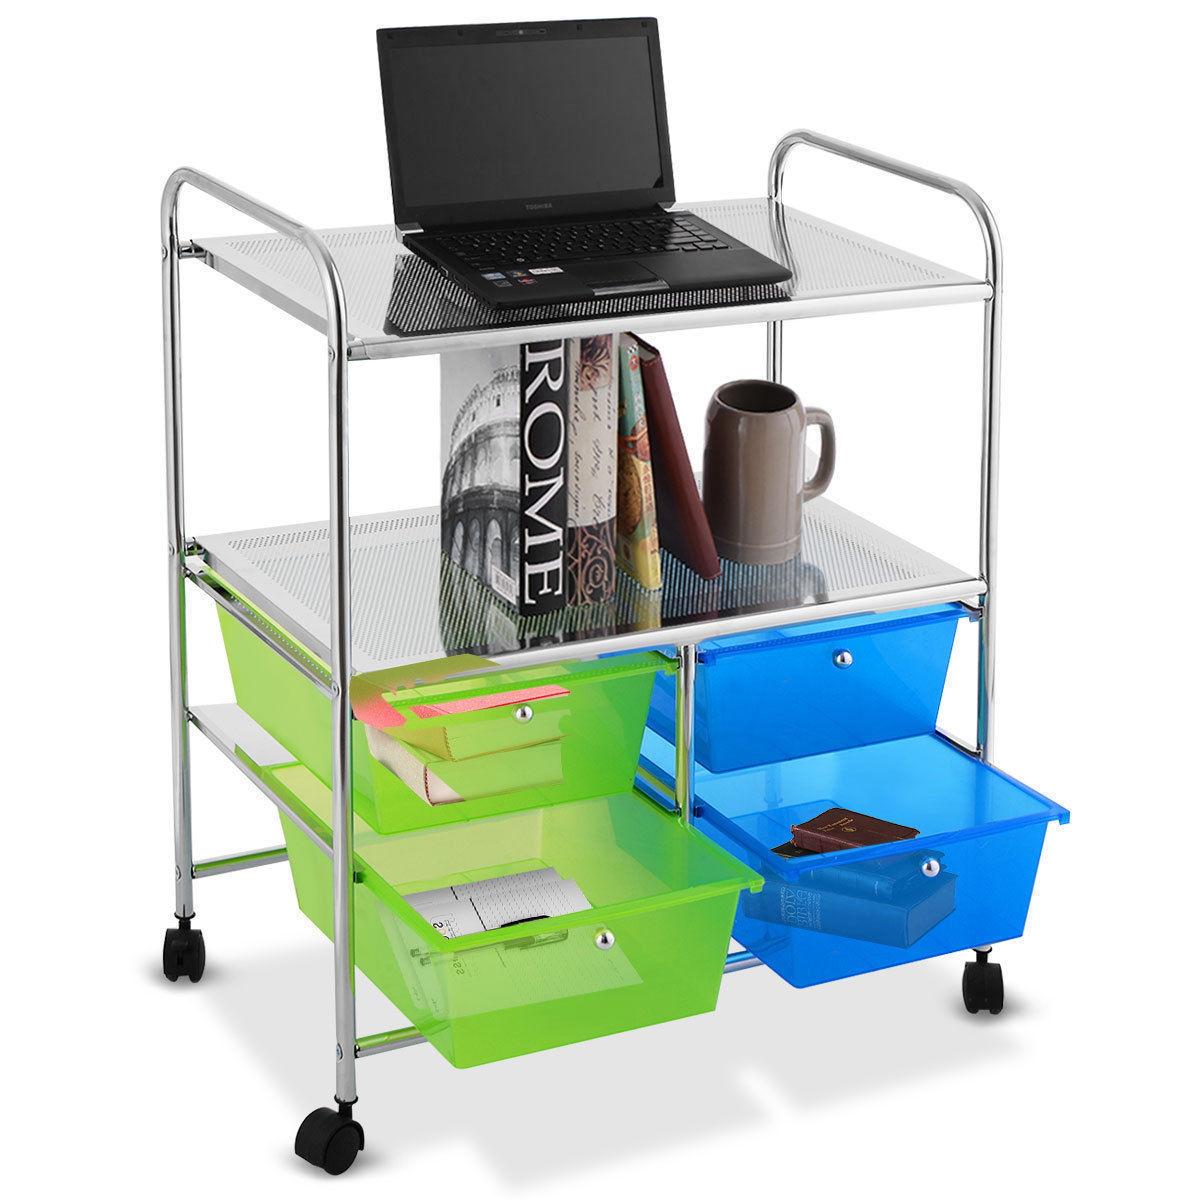 GHP Steel & Plastic 4 Big Colored Drawers & 2 Shelves Rolling Storage Cart w 4 Wheels